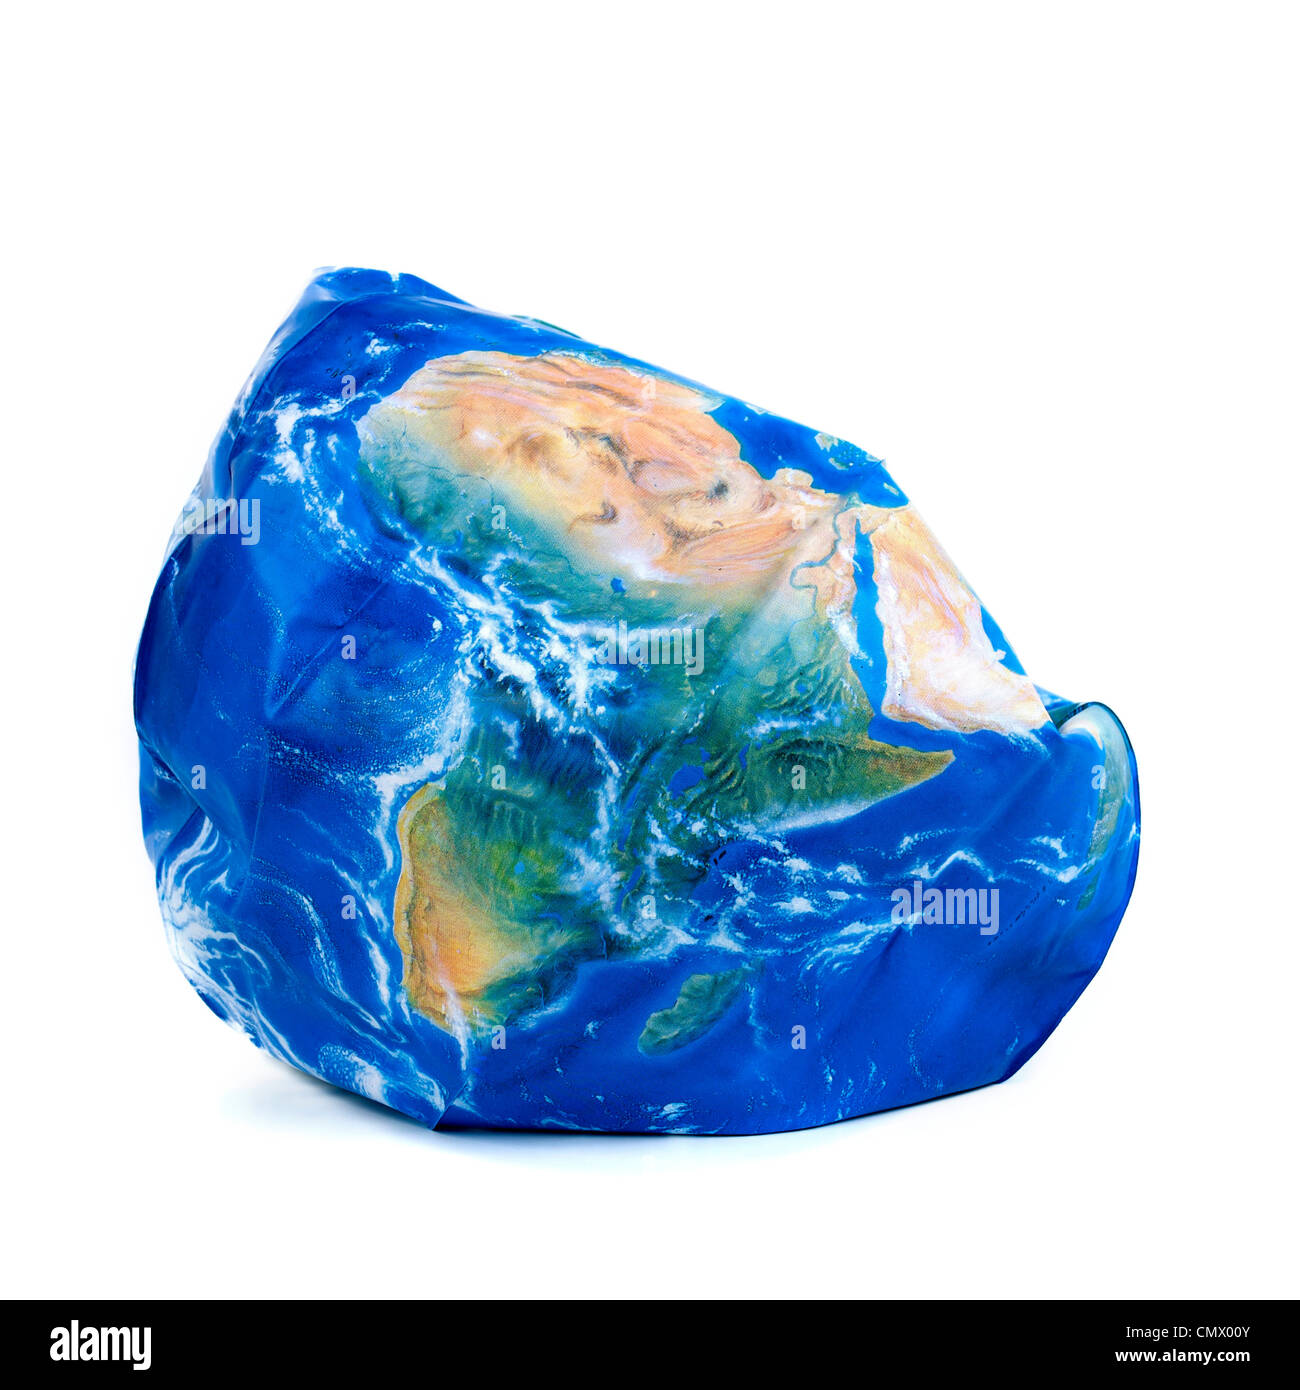 Plastic globe deflated - global / earth / broken / problems / climate change / environment concept - Stock Image